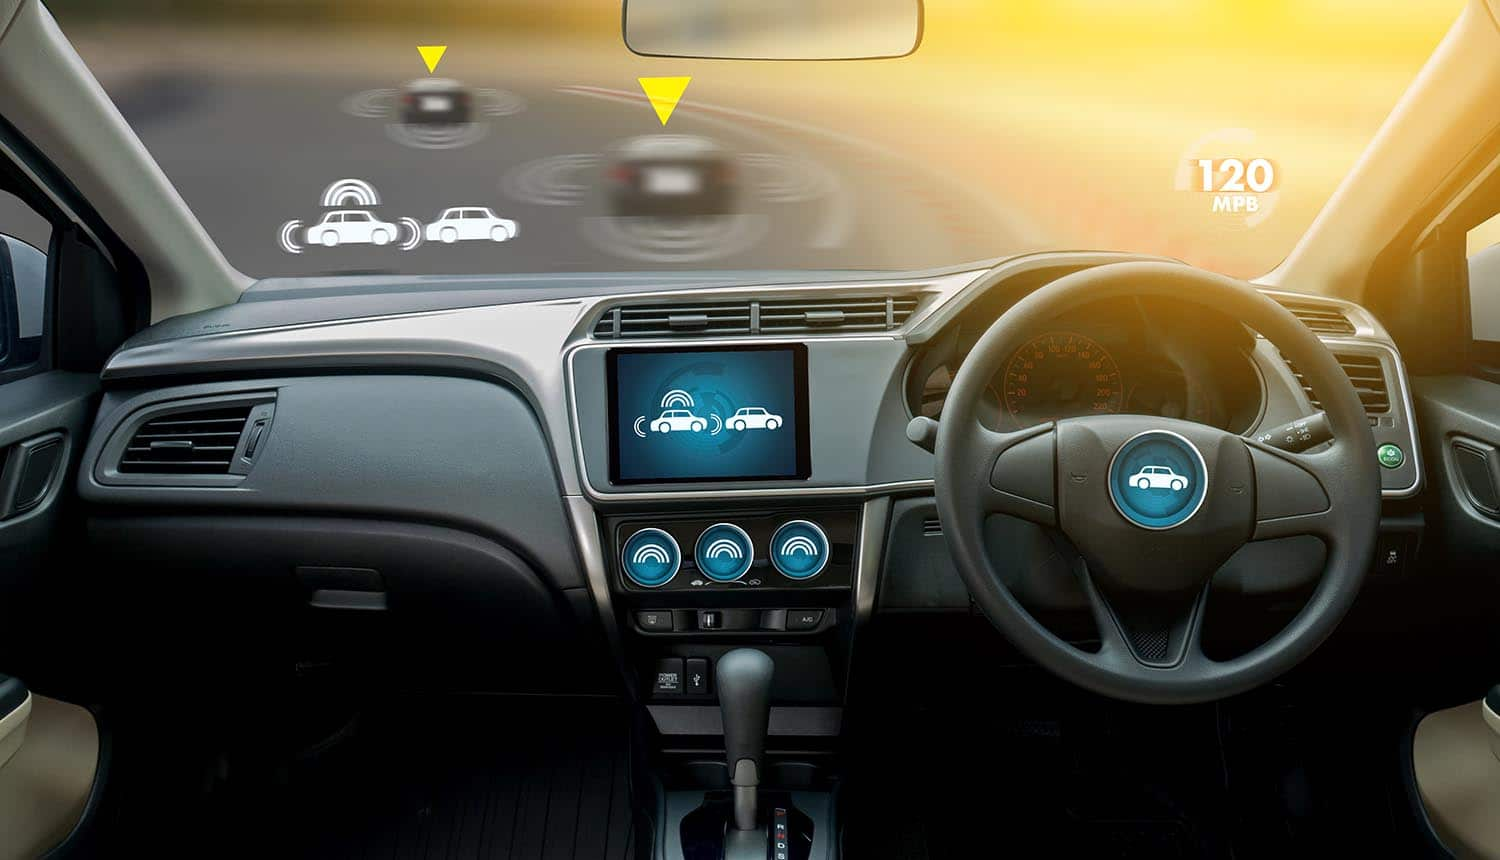 Image of self-driving connected vehicles with no cummuter in the driving seat signifying no one in control of privacy